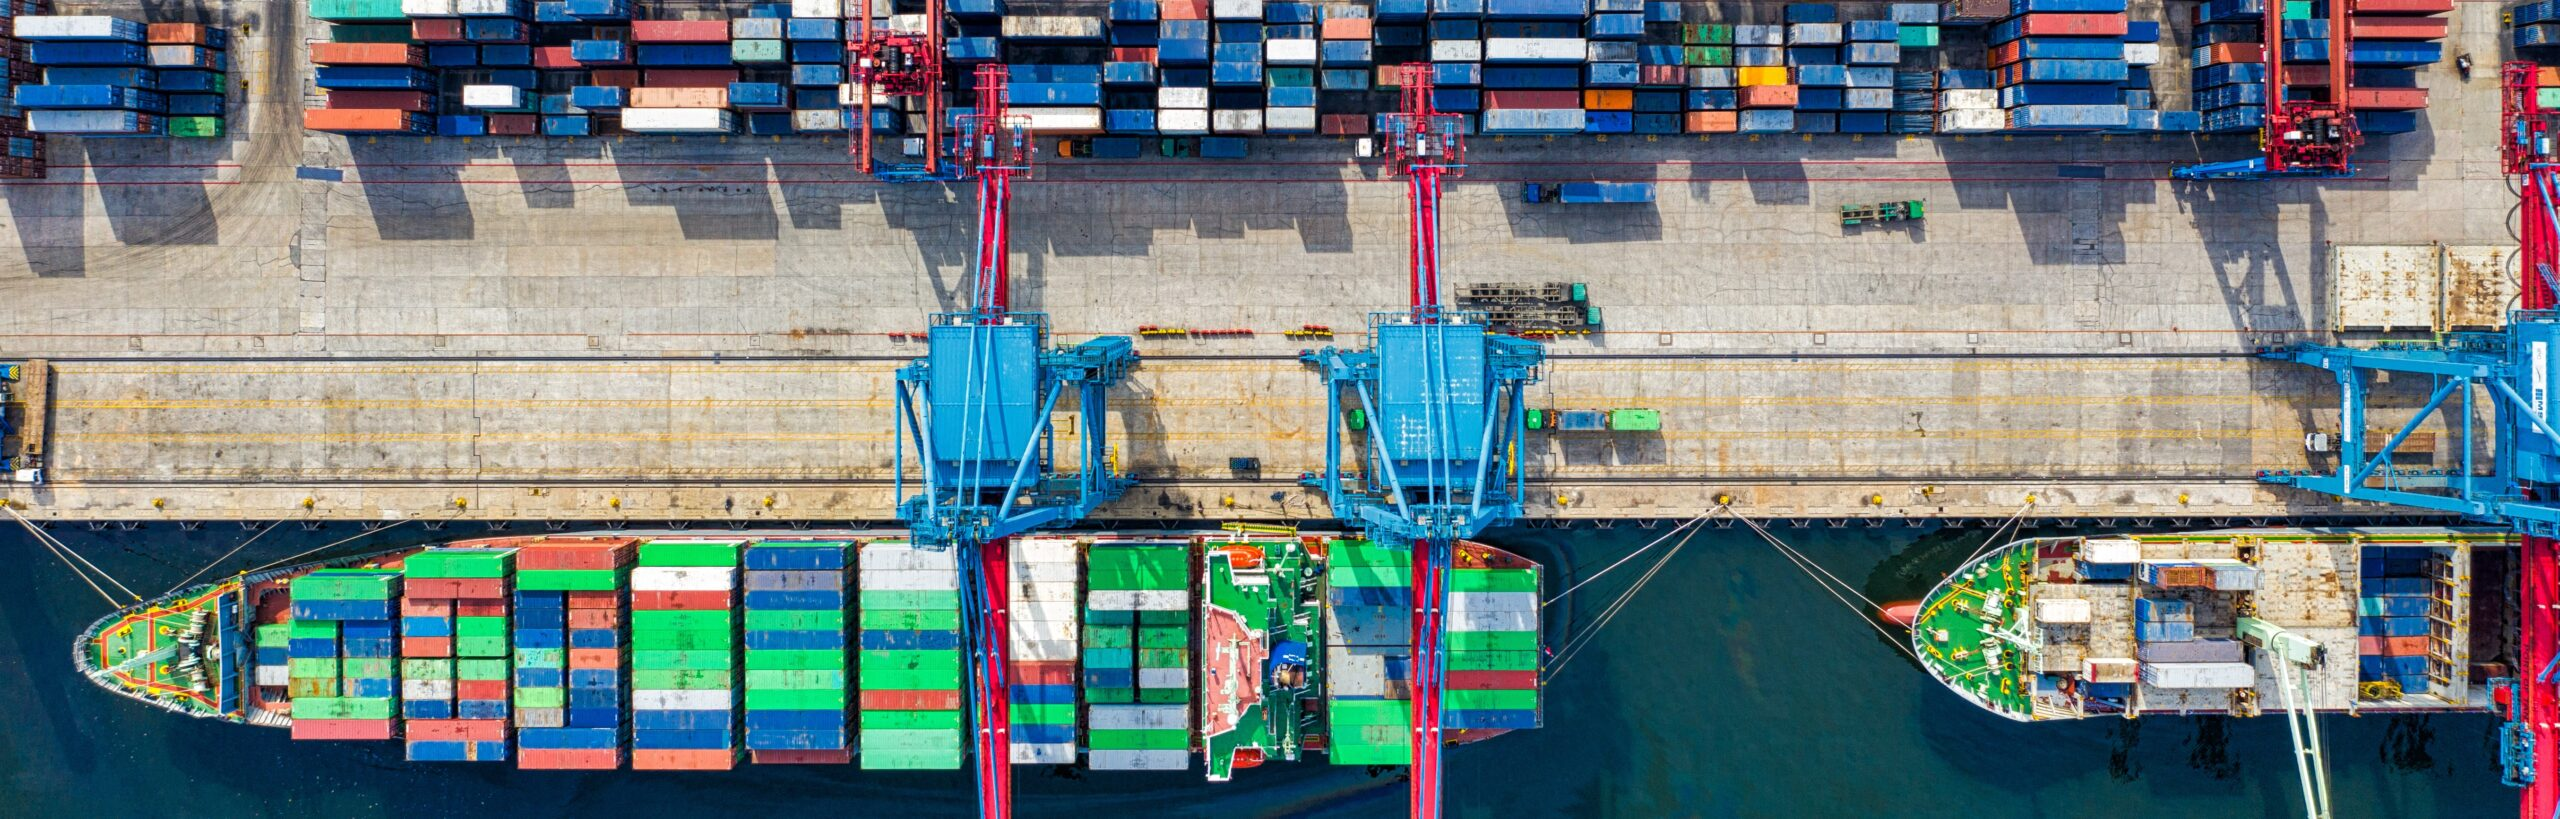 shipping containers and ships